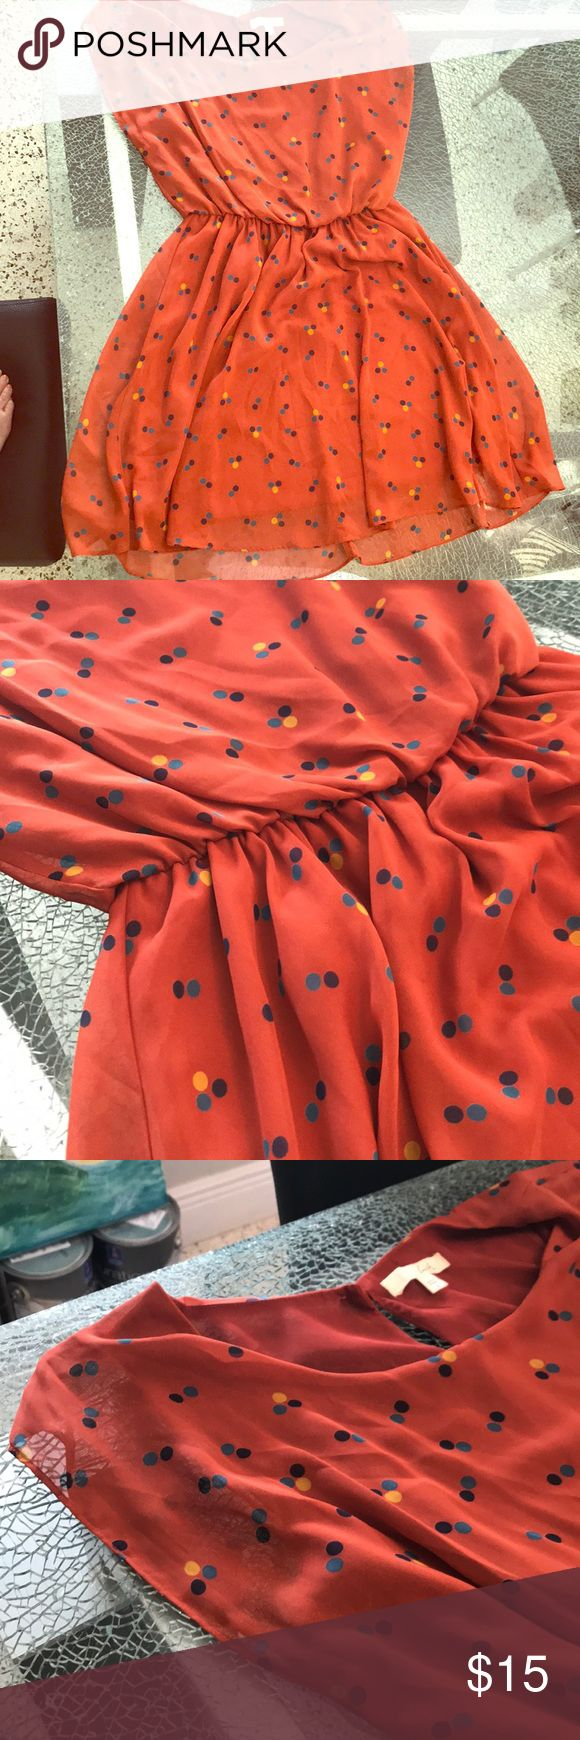 Orange mini dress Orange mini dress with green, blue and yellow polka dots. About 3 inches above the knee. Elastic waste. Sheer short sleeves Lush brand size large Lush Dresses Mini